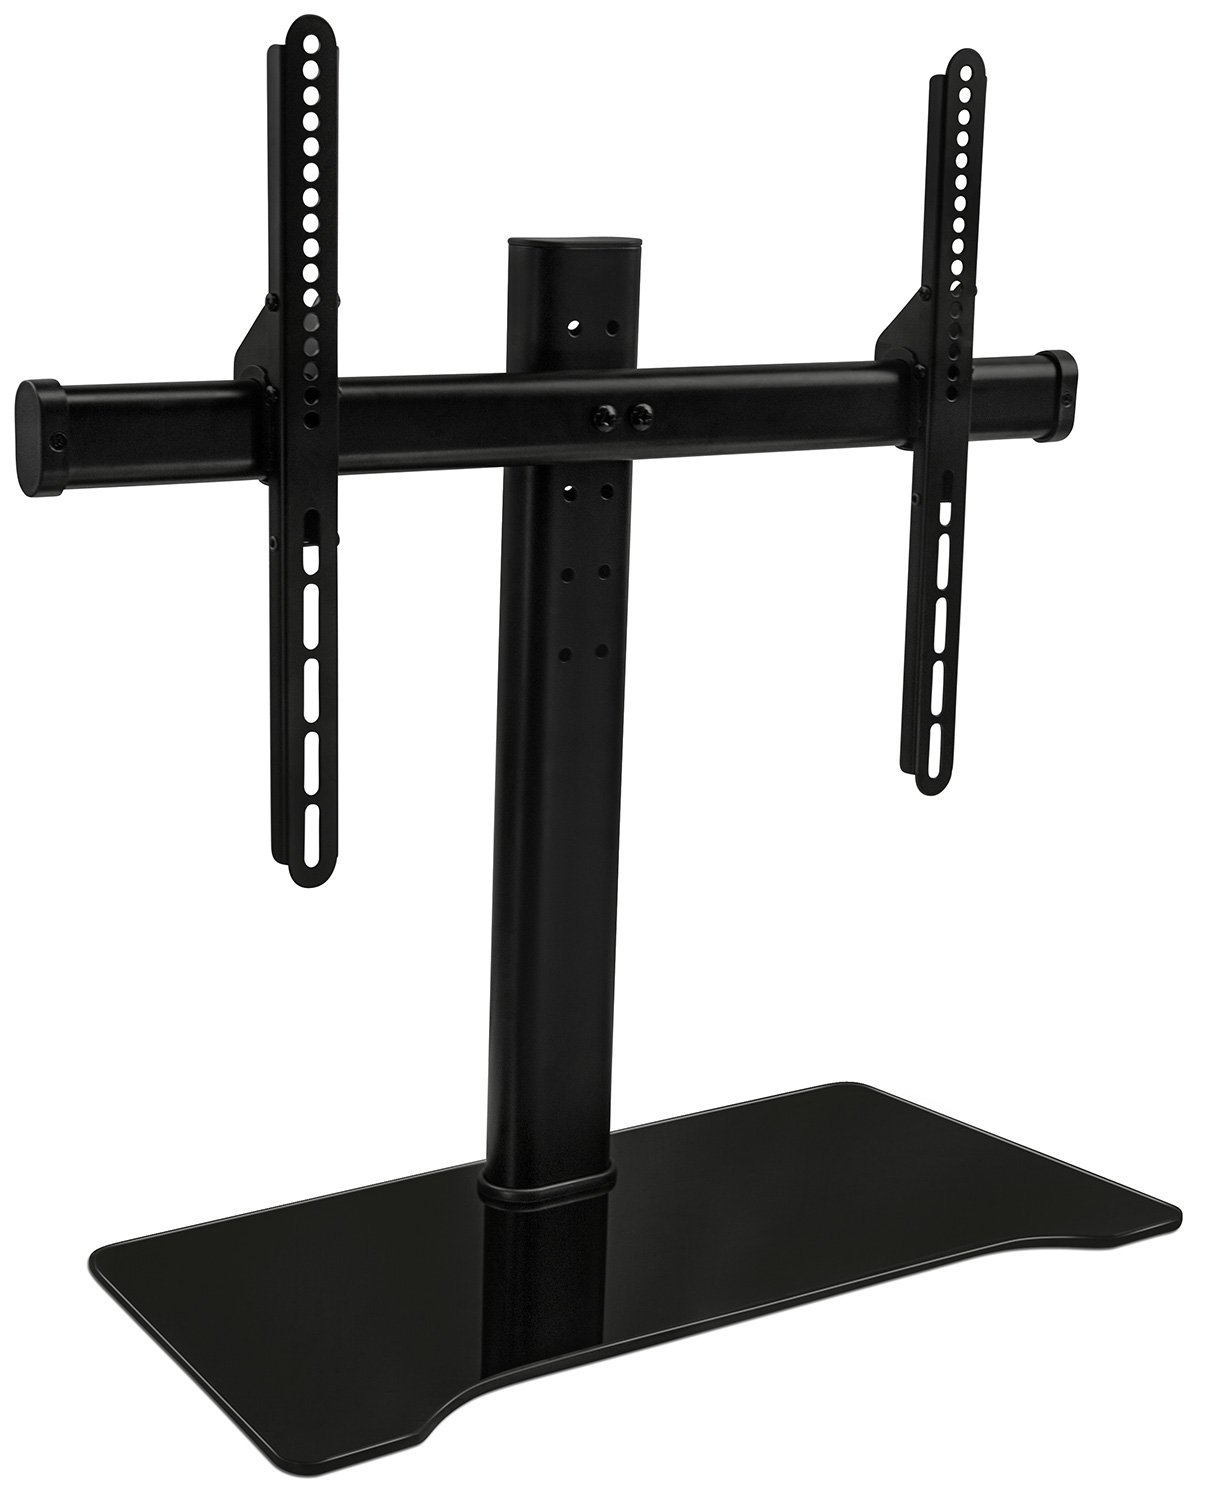 Mount It Universal Tabletop Tv Stand Mount And Av Media Glass Shelf